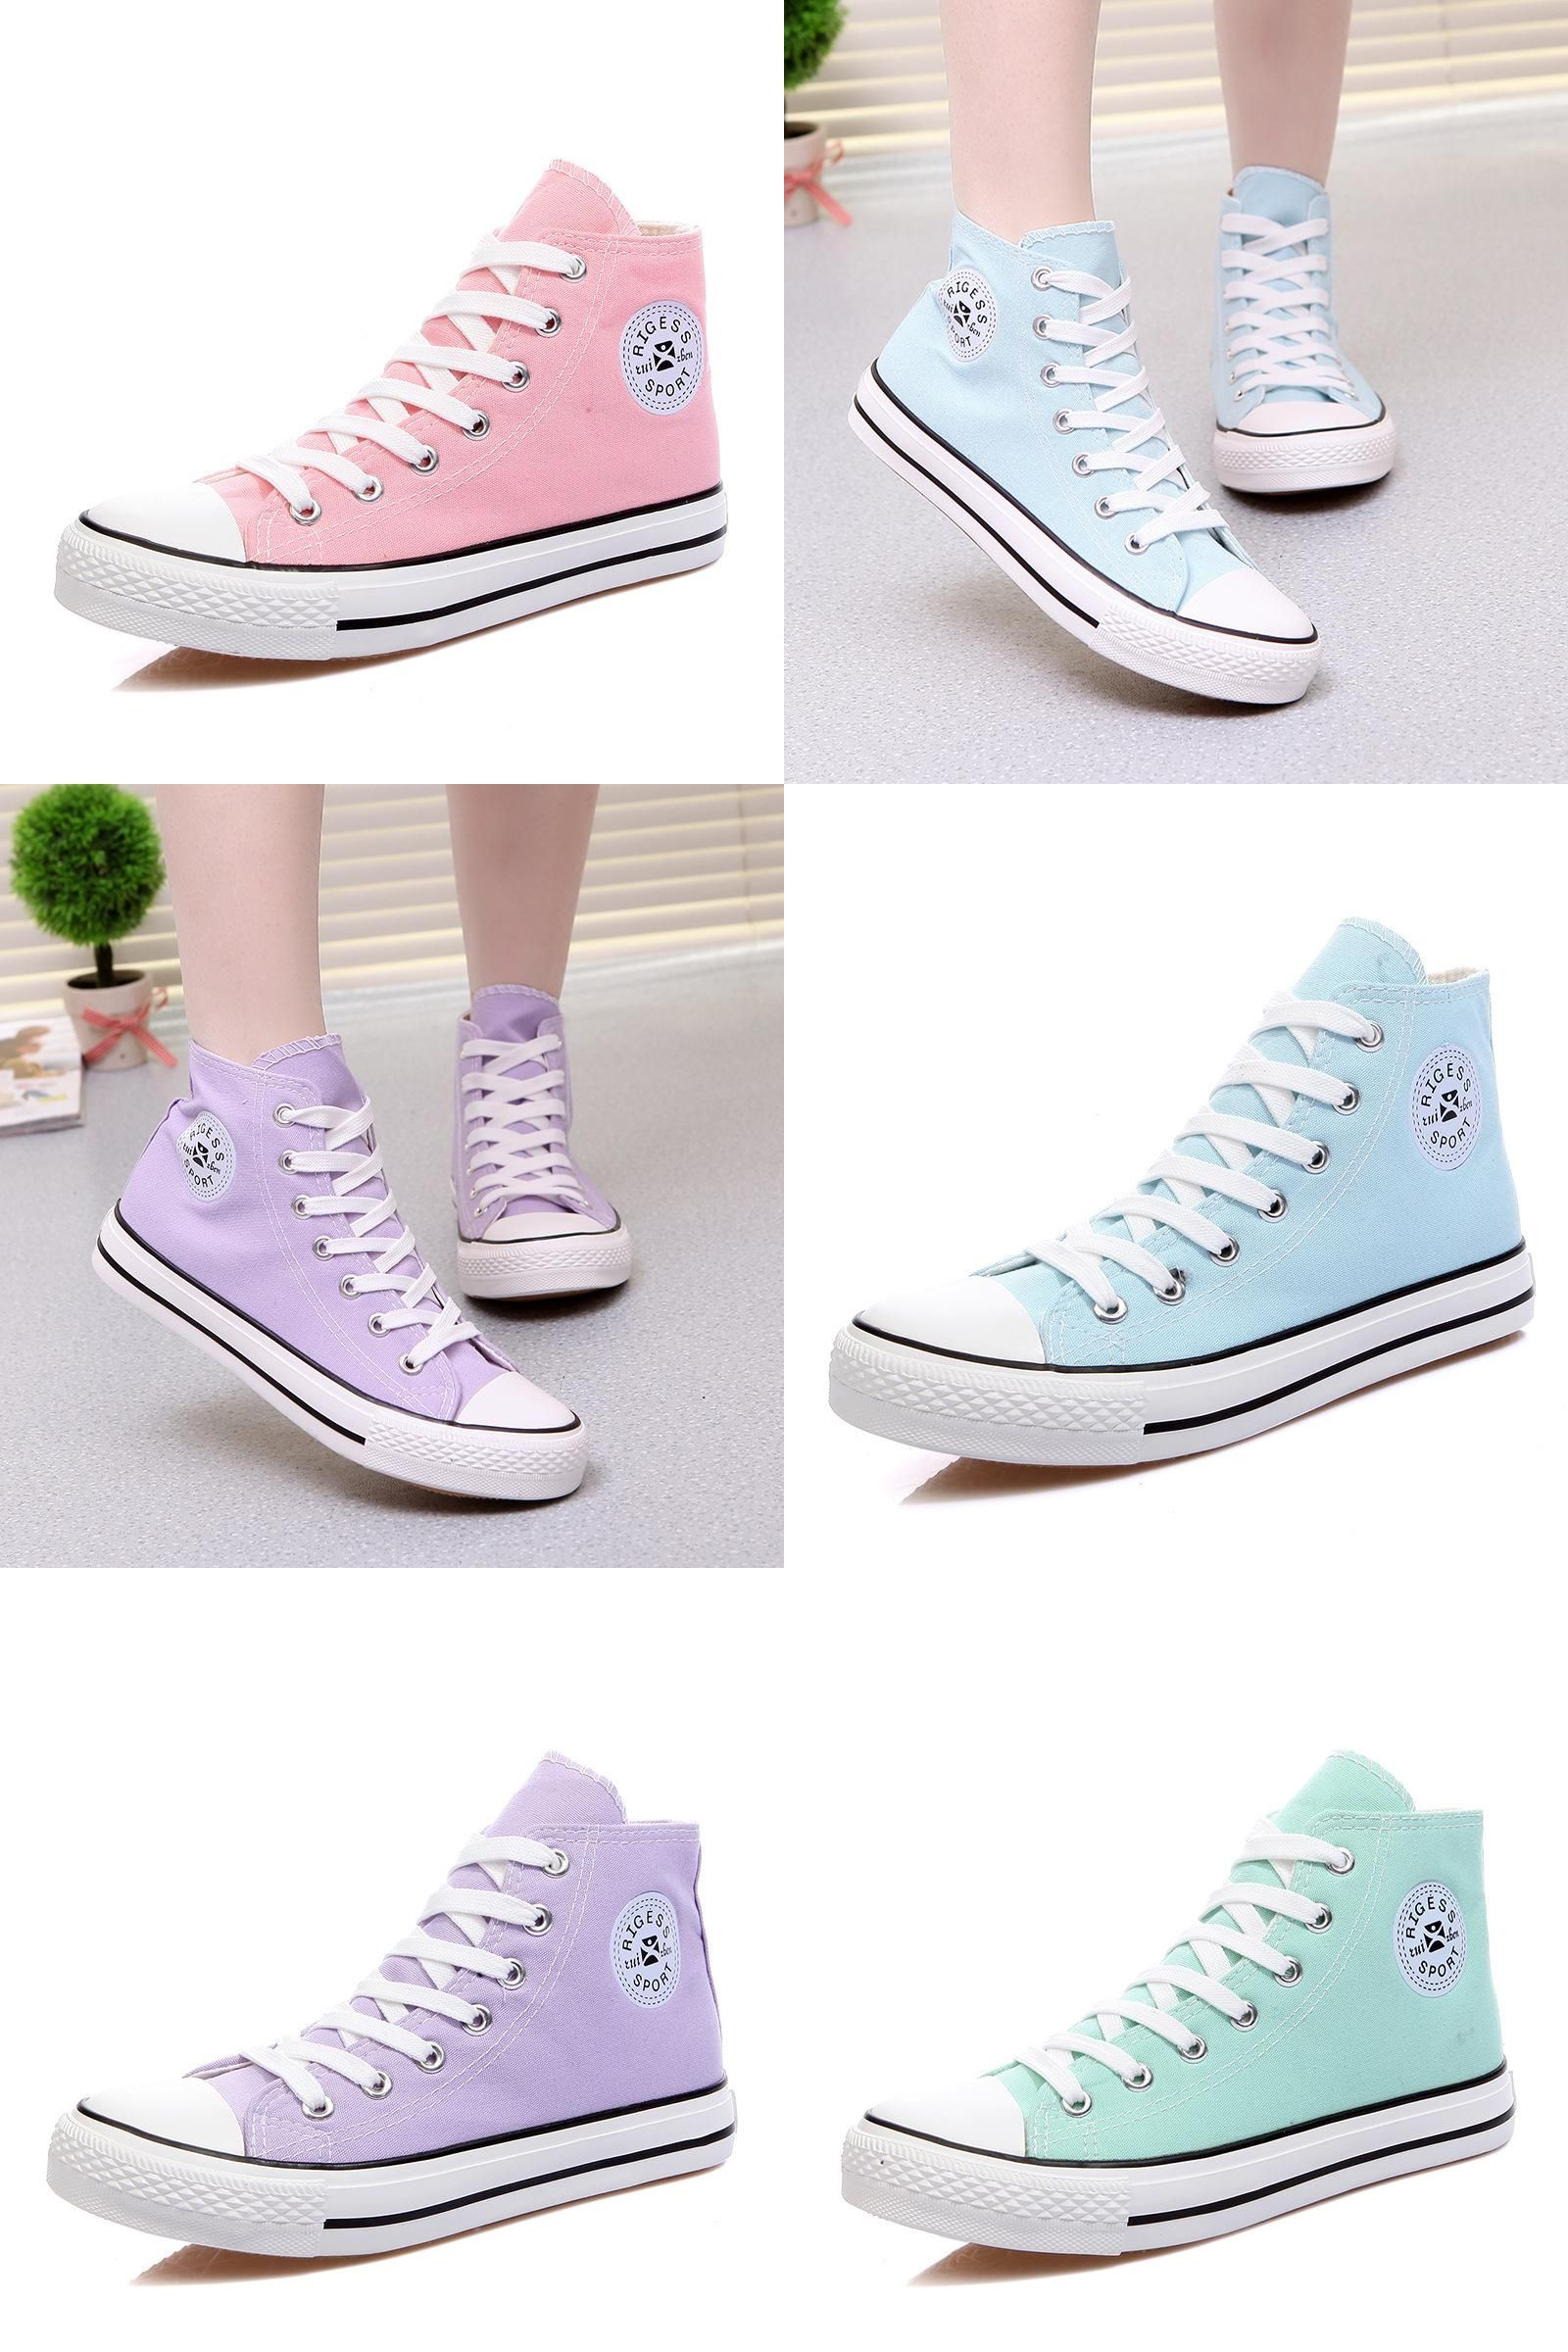 Visit to Buy  RIGESS Women s casual shoes 2017 classic candy color in  canvas shoes 7120c365ad5c